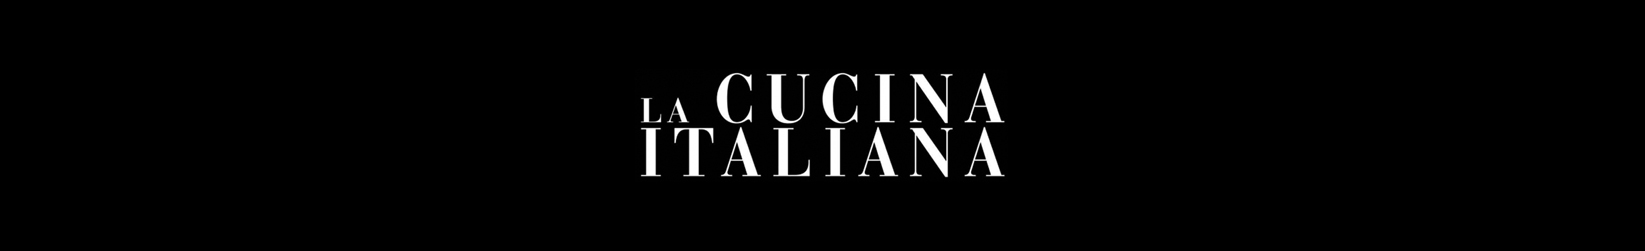 La Cucina Italiana | Studio Pastina | March 2017